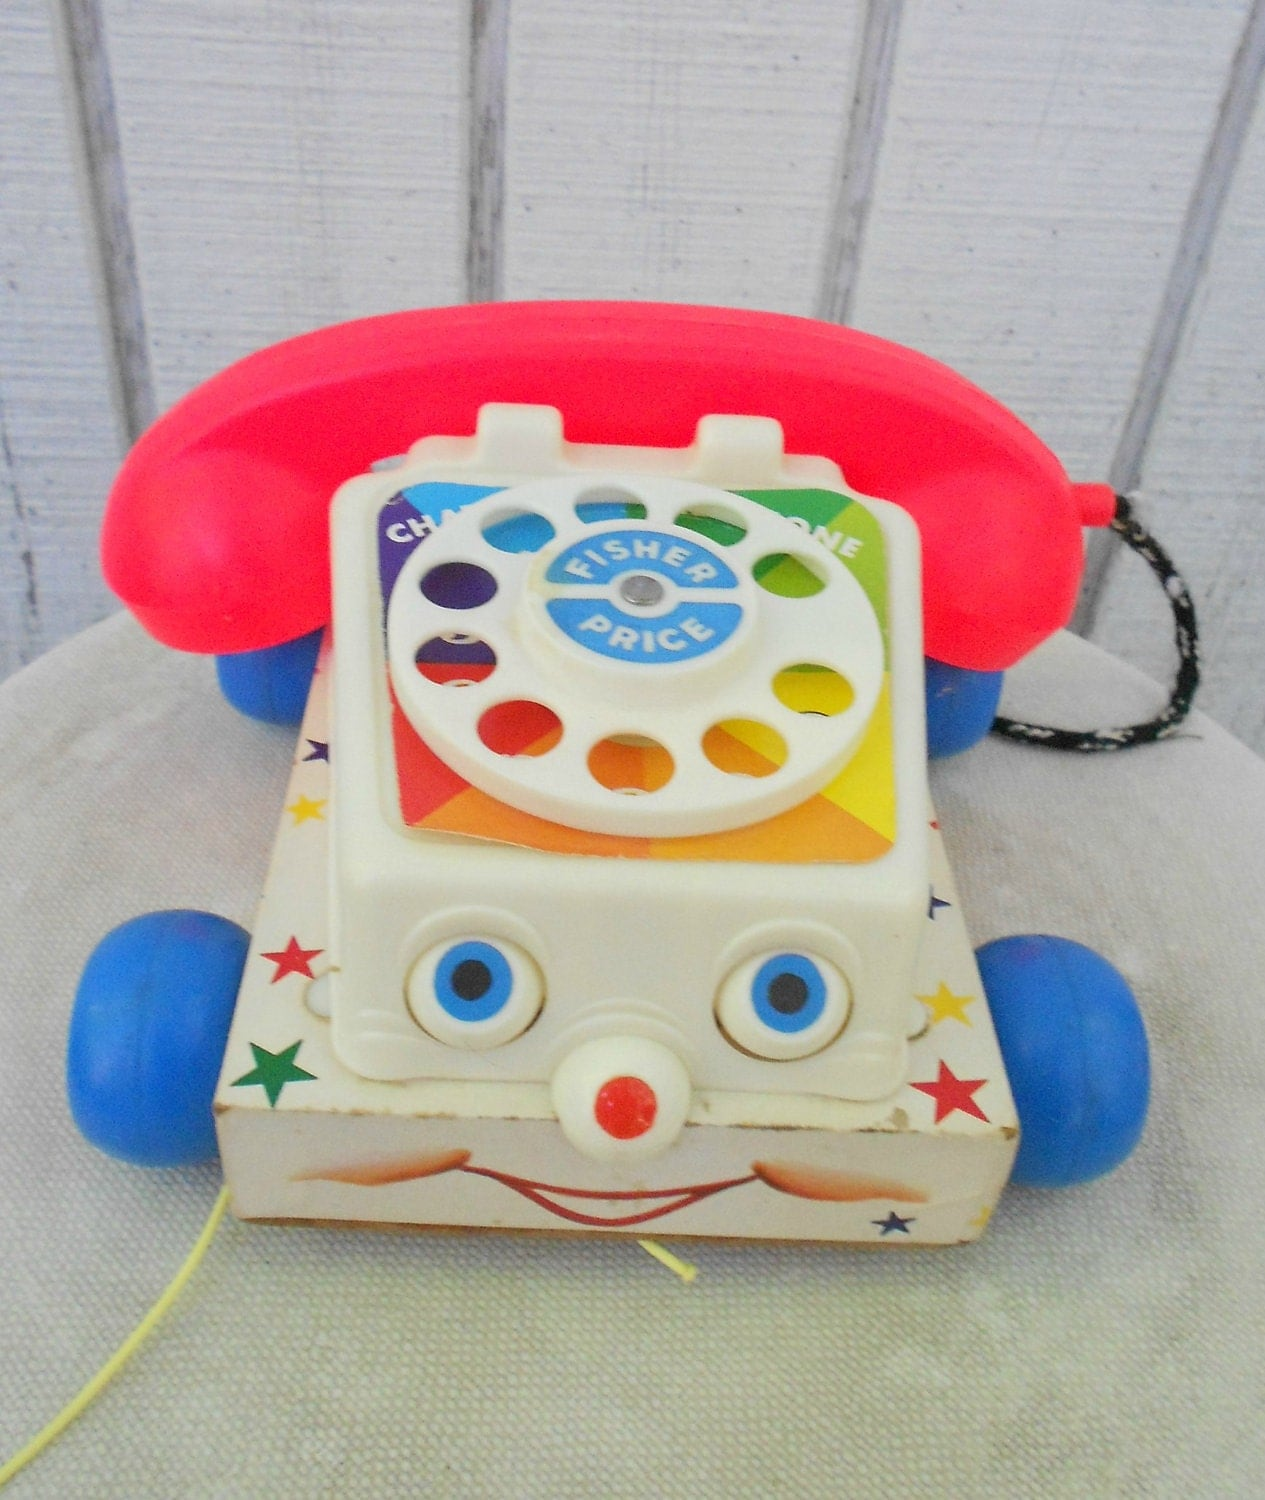 Vintage Toys From The 60s : S fisher price telephone chat vintage toy chatter phone